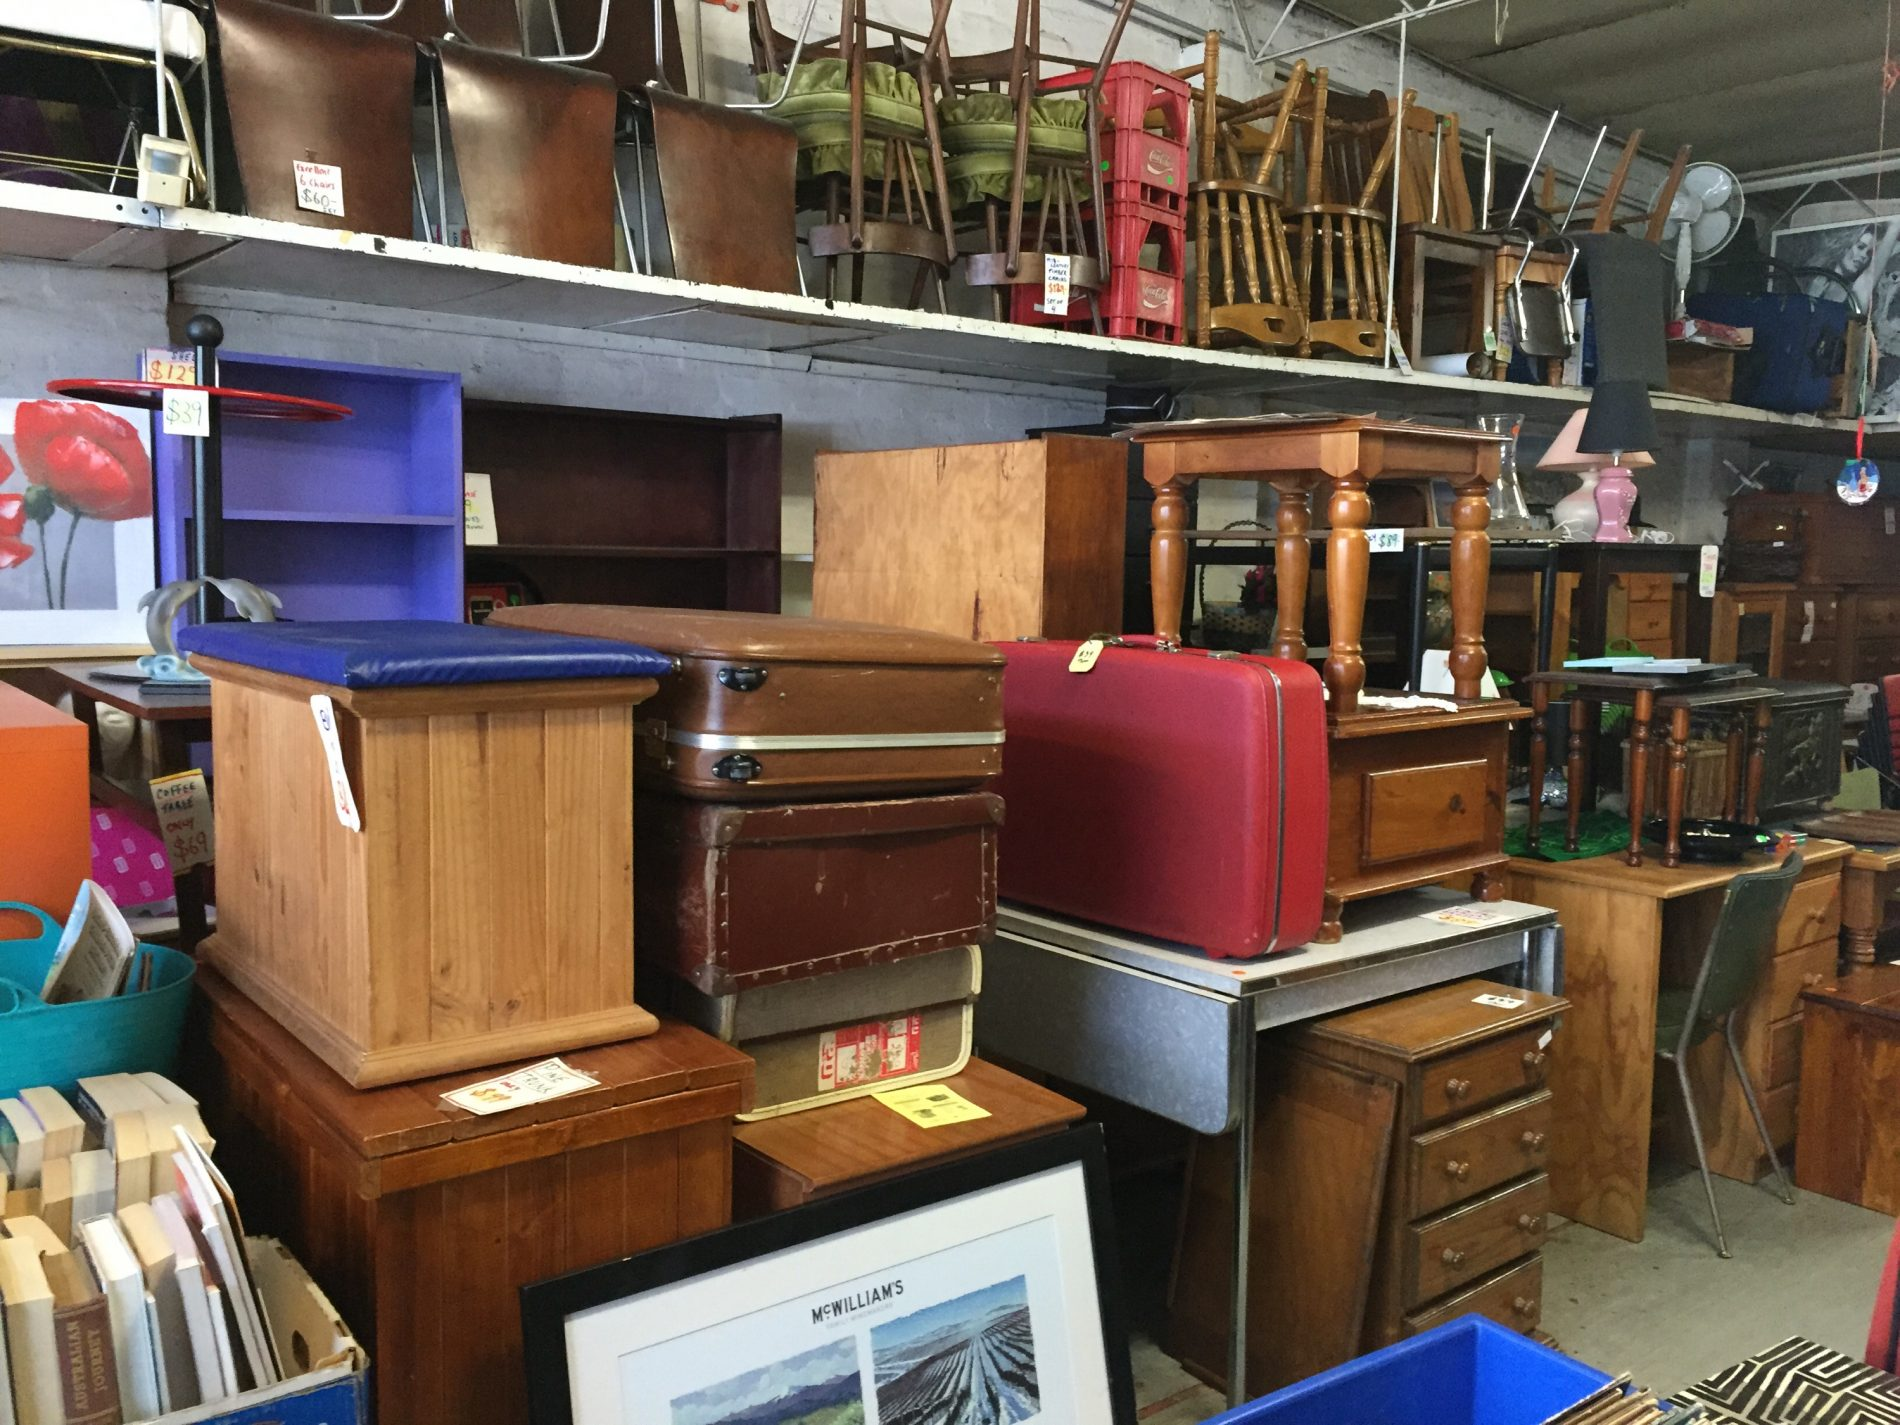 Buy Furniture For Rental Property: Nice And Easy To Move